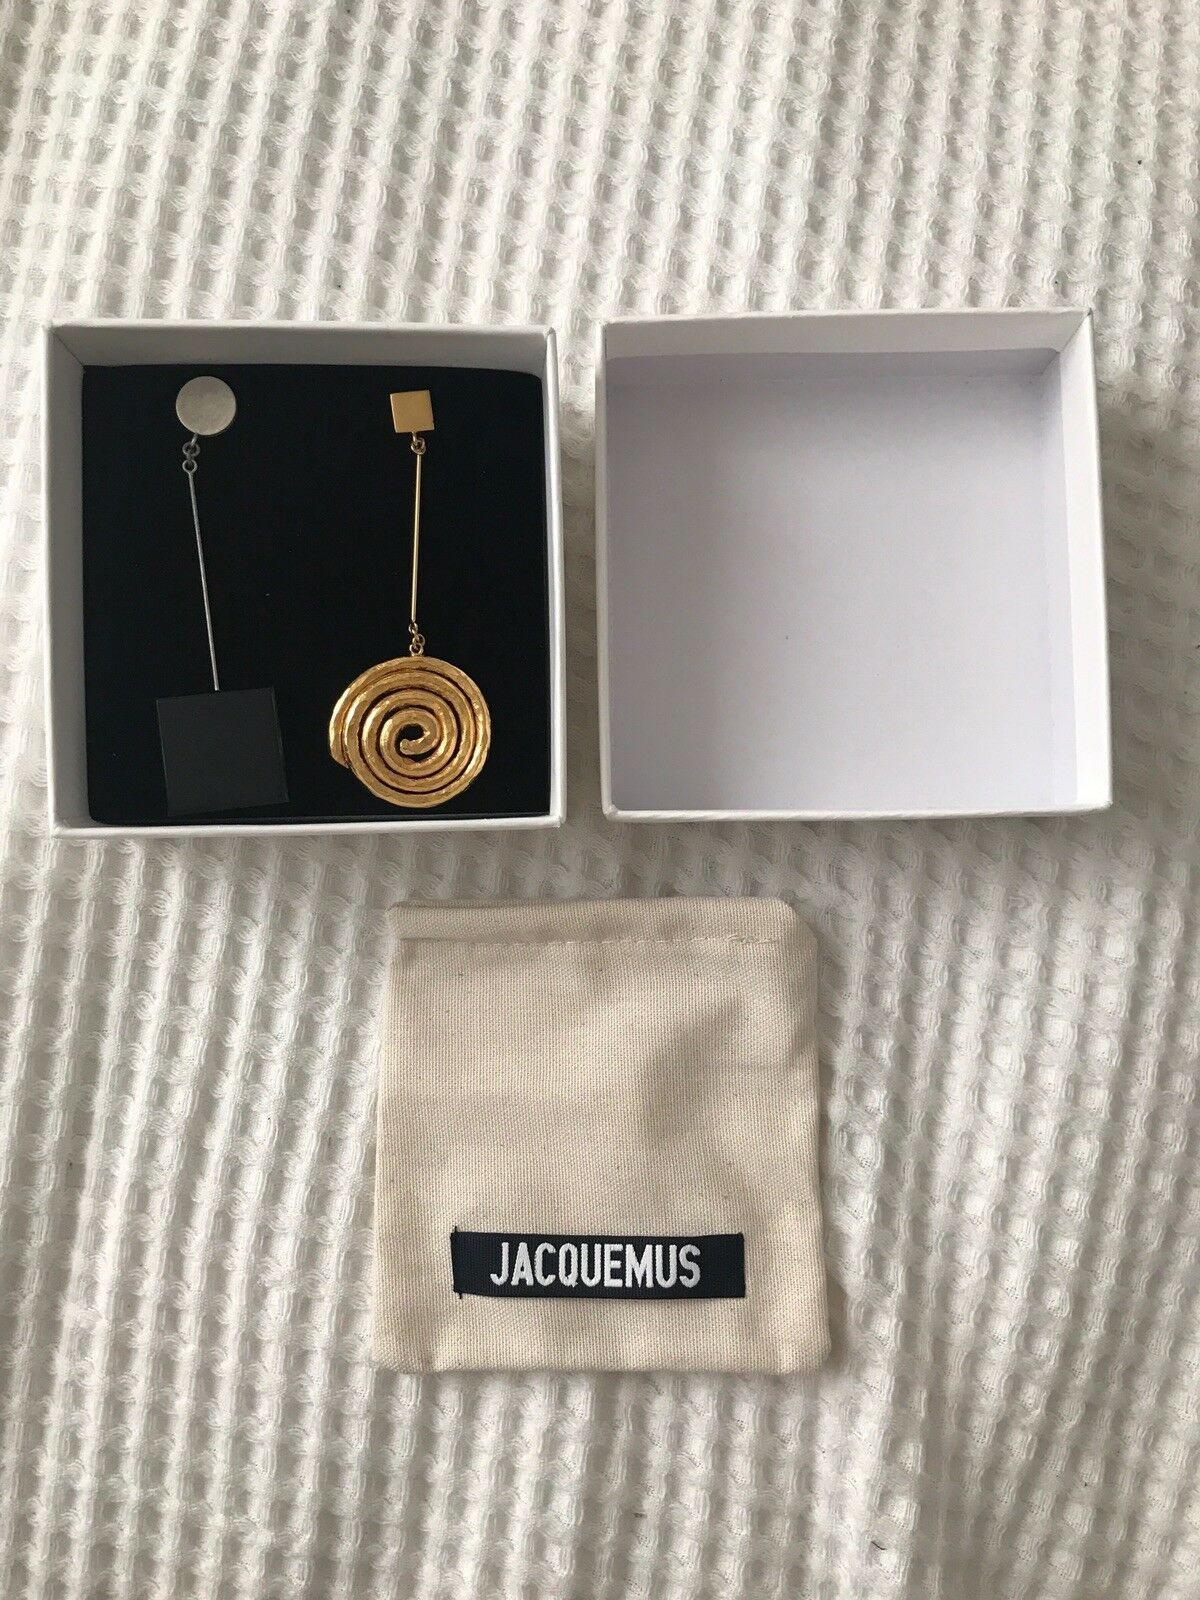 Jacquemus Le Carre Spiral Square Earrings